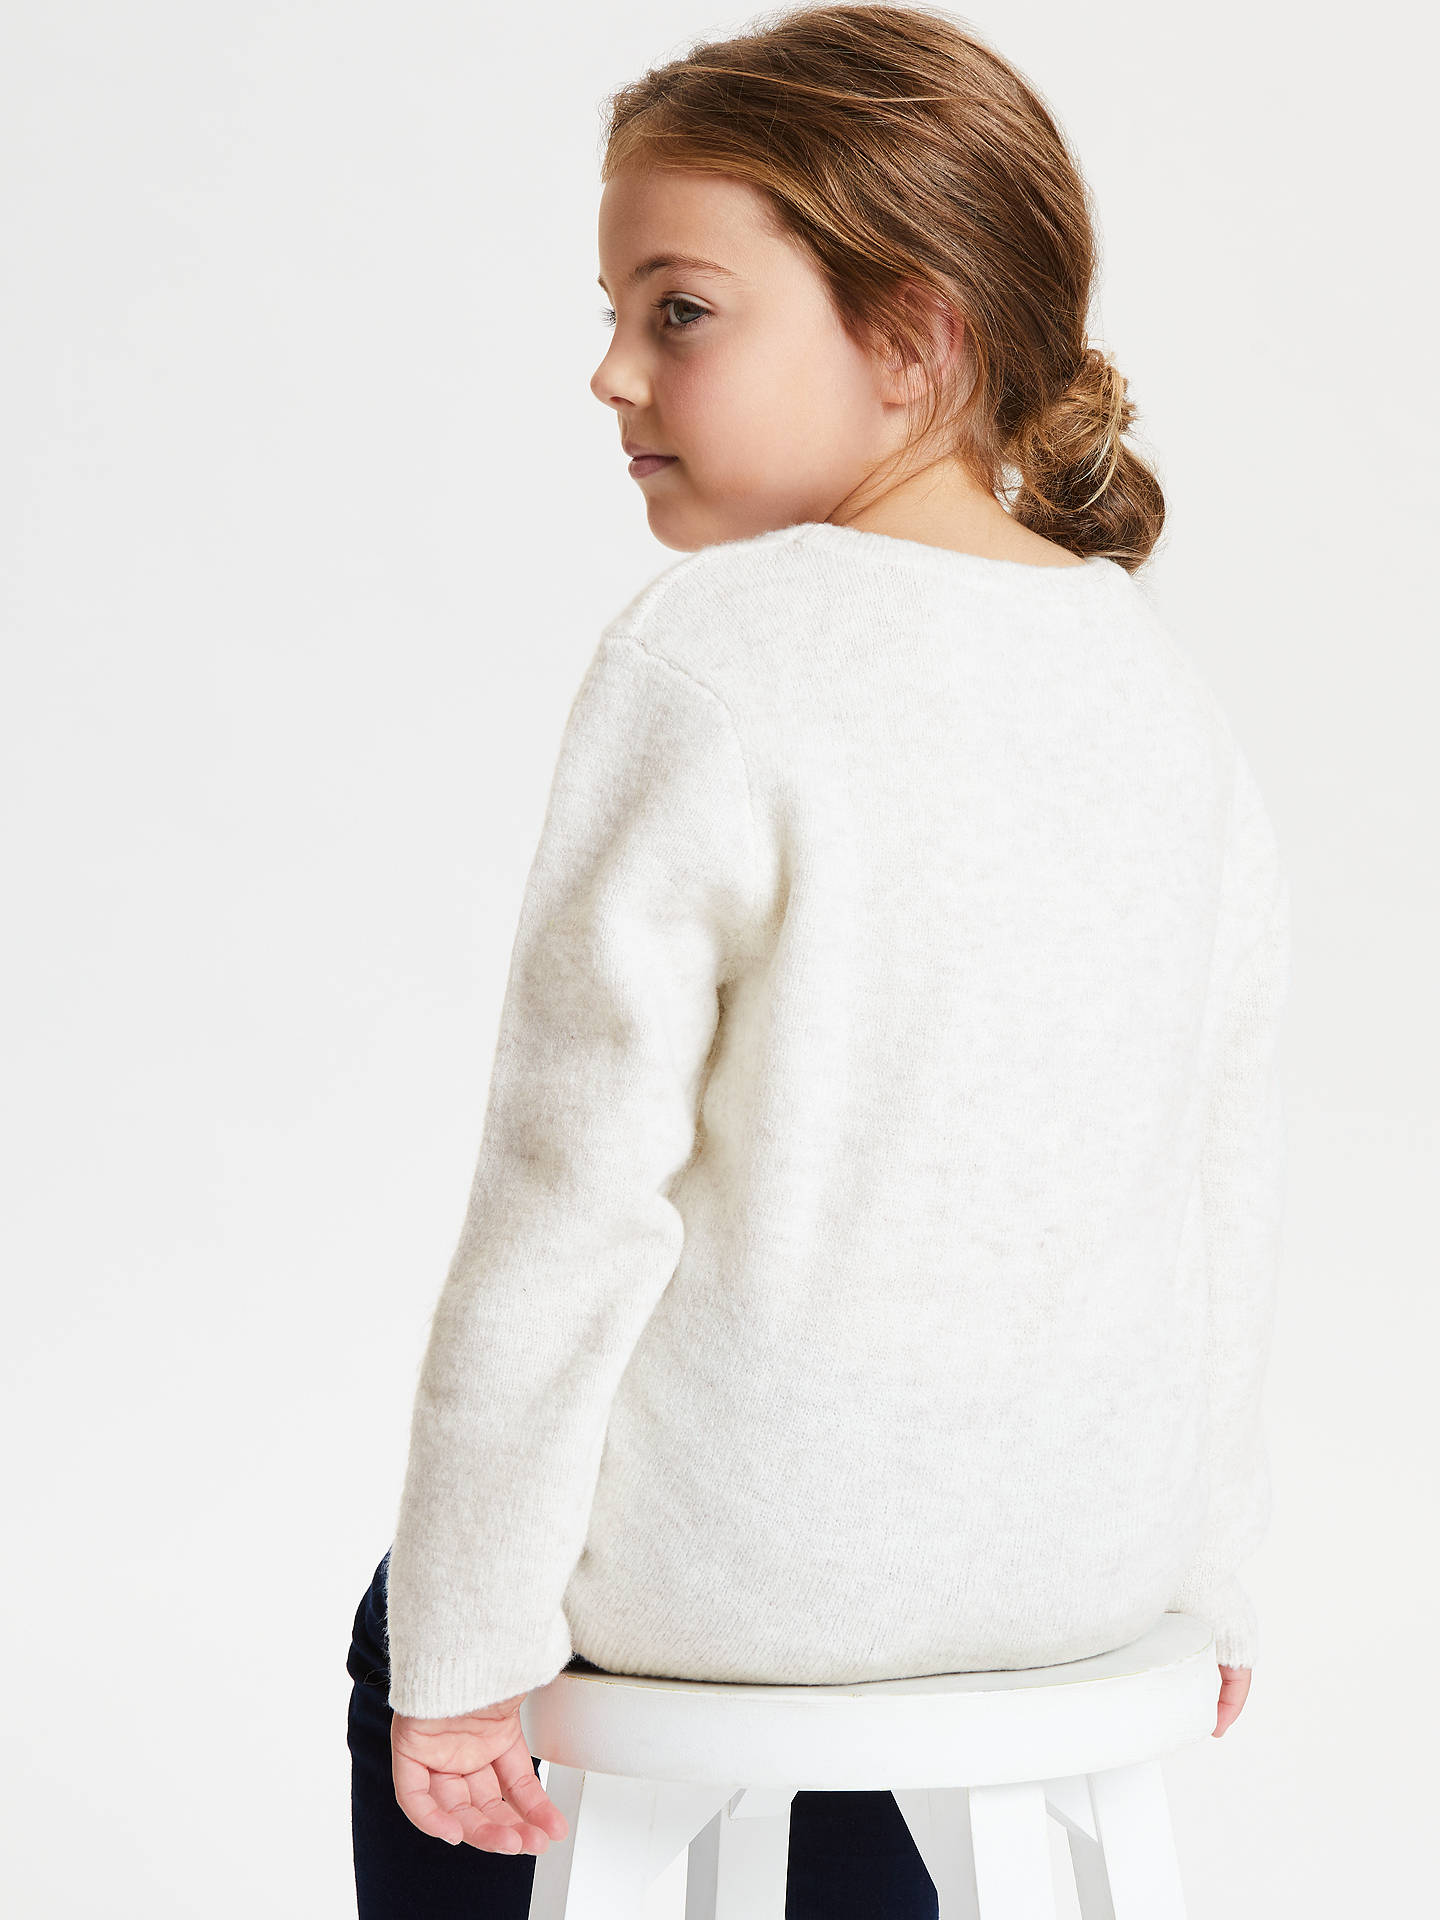 BuyJohn Lewis & Partners Girls' Reindeer Sequin Jumper, Cream, 9 years Online at johnlewis.com